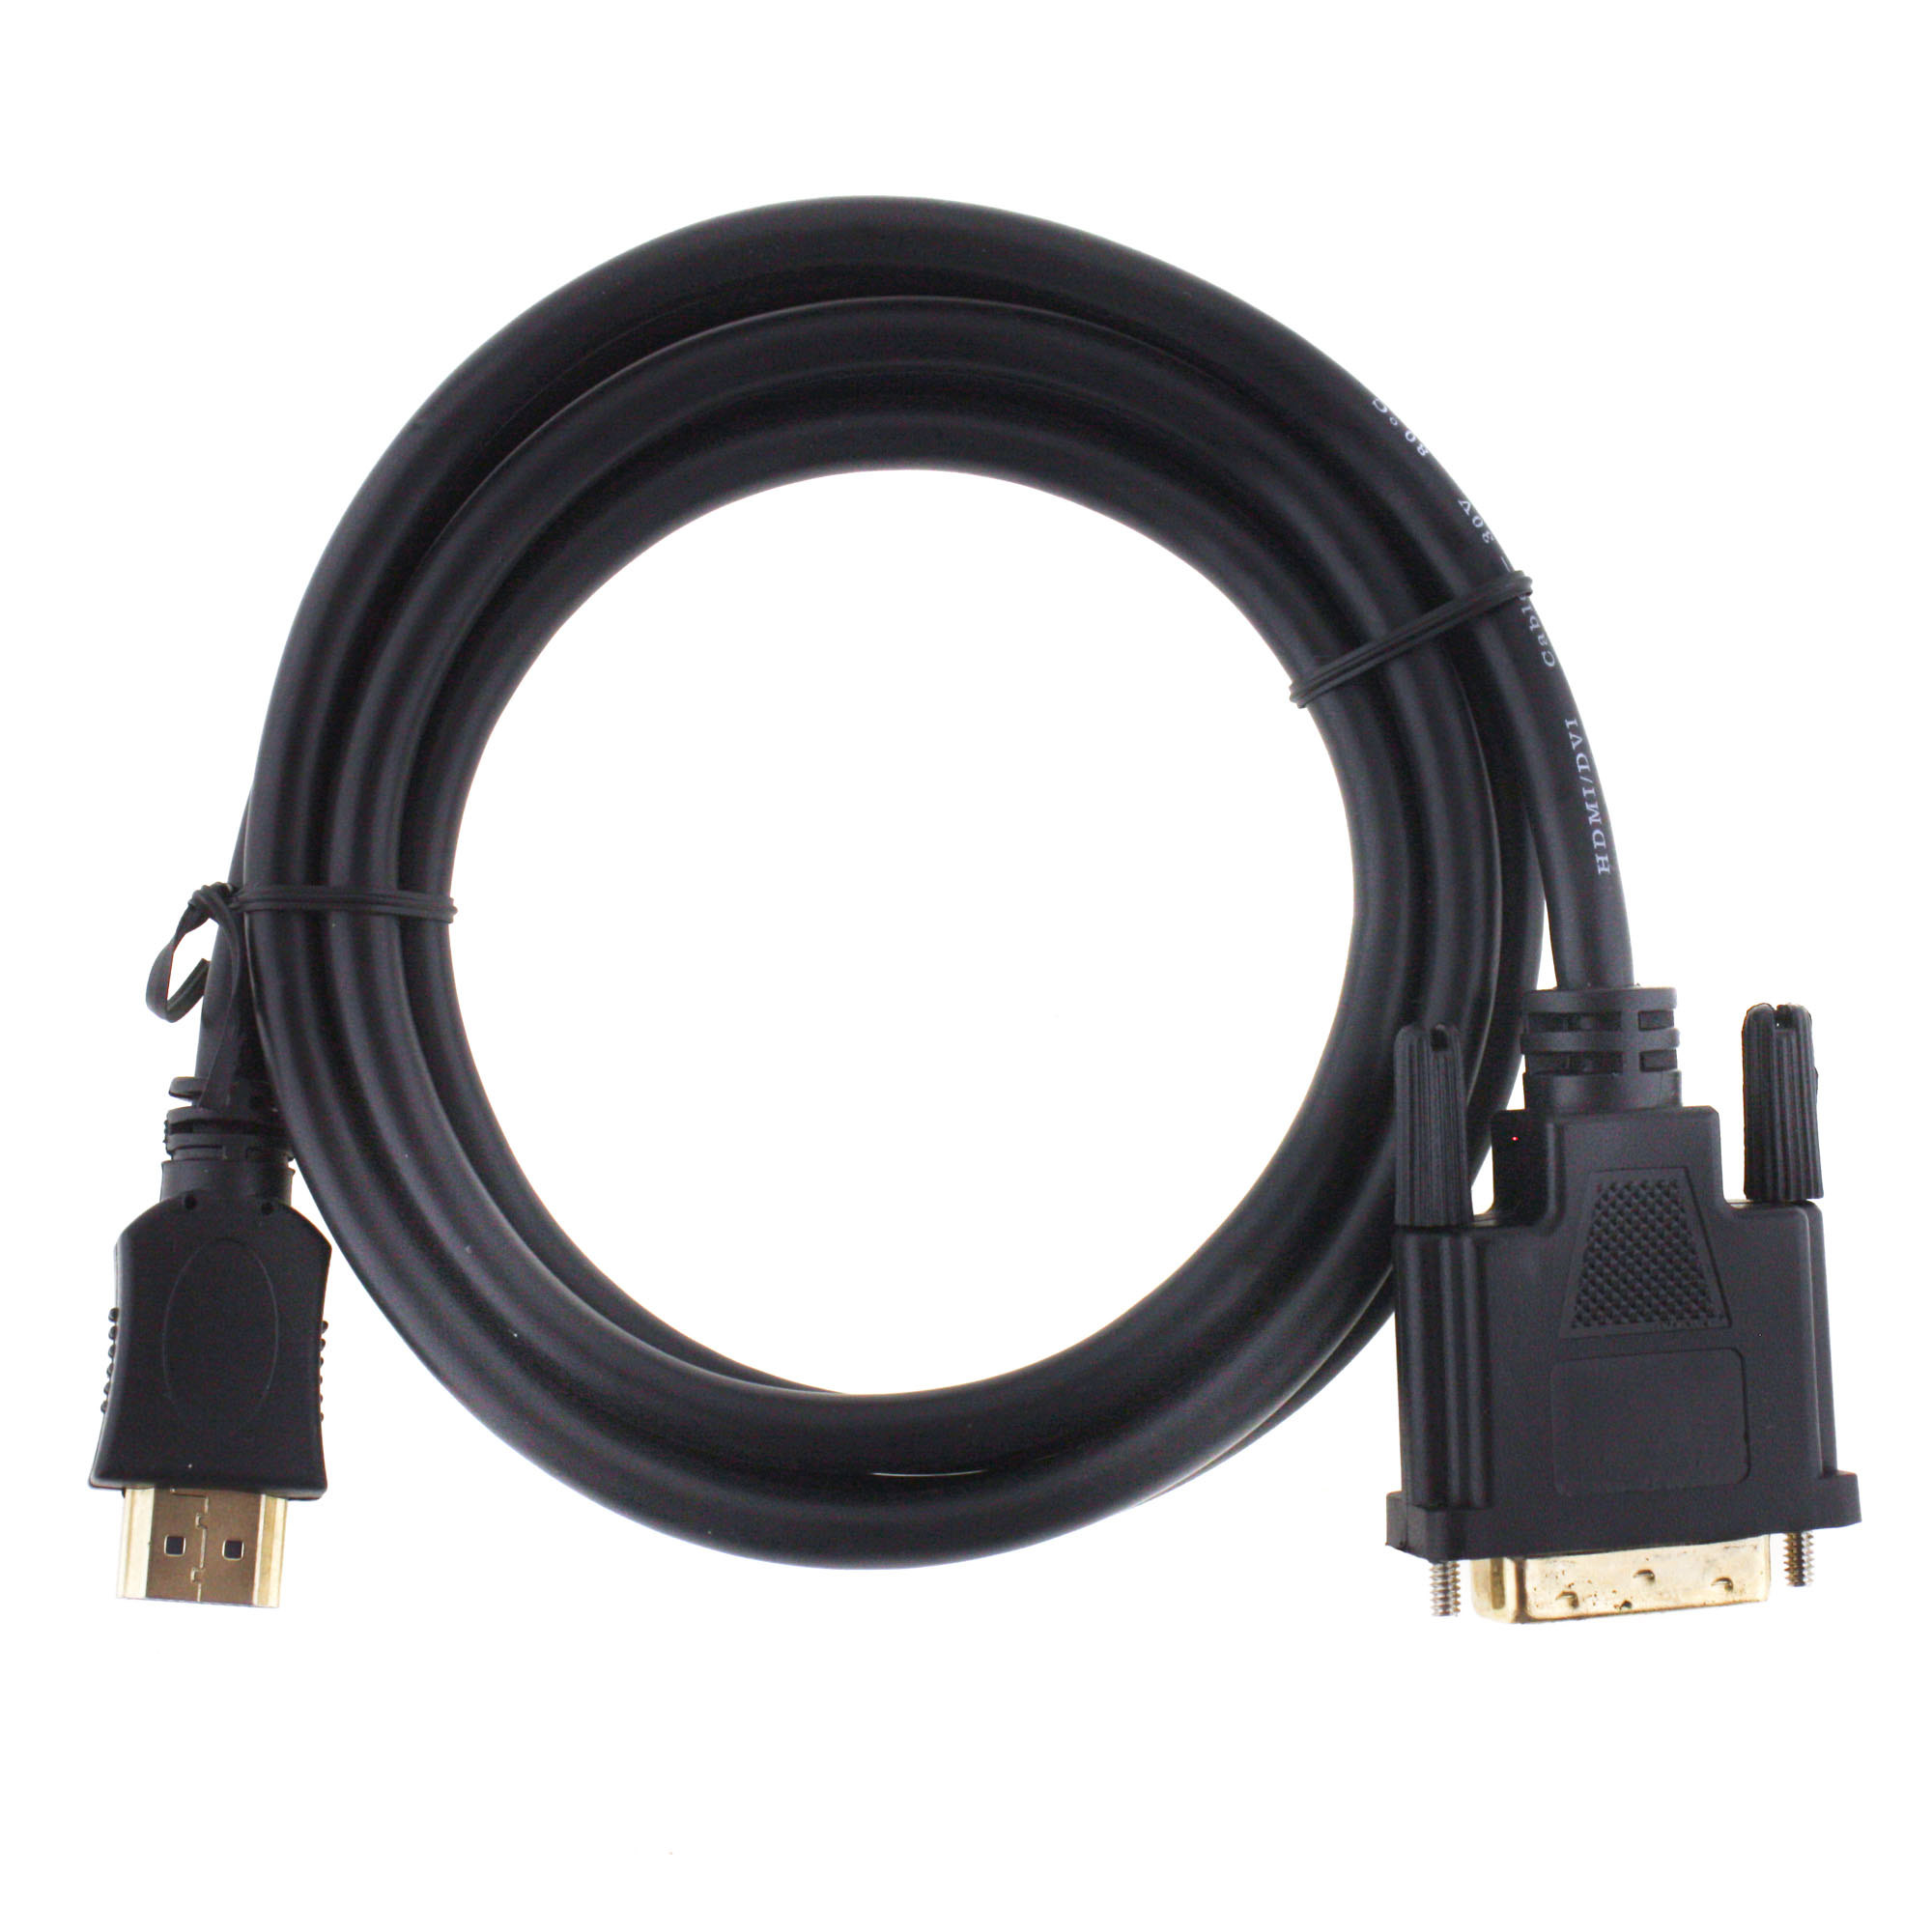 hdmi auf dvi kabel 1 5 meter 313394 matrix handels gmbh webshop. Black Bedroom Furniture Sets. Home Design Ideas